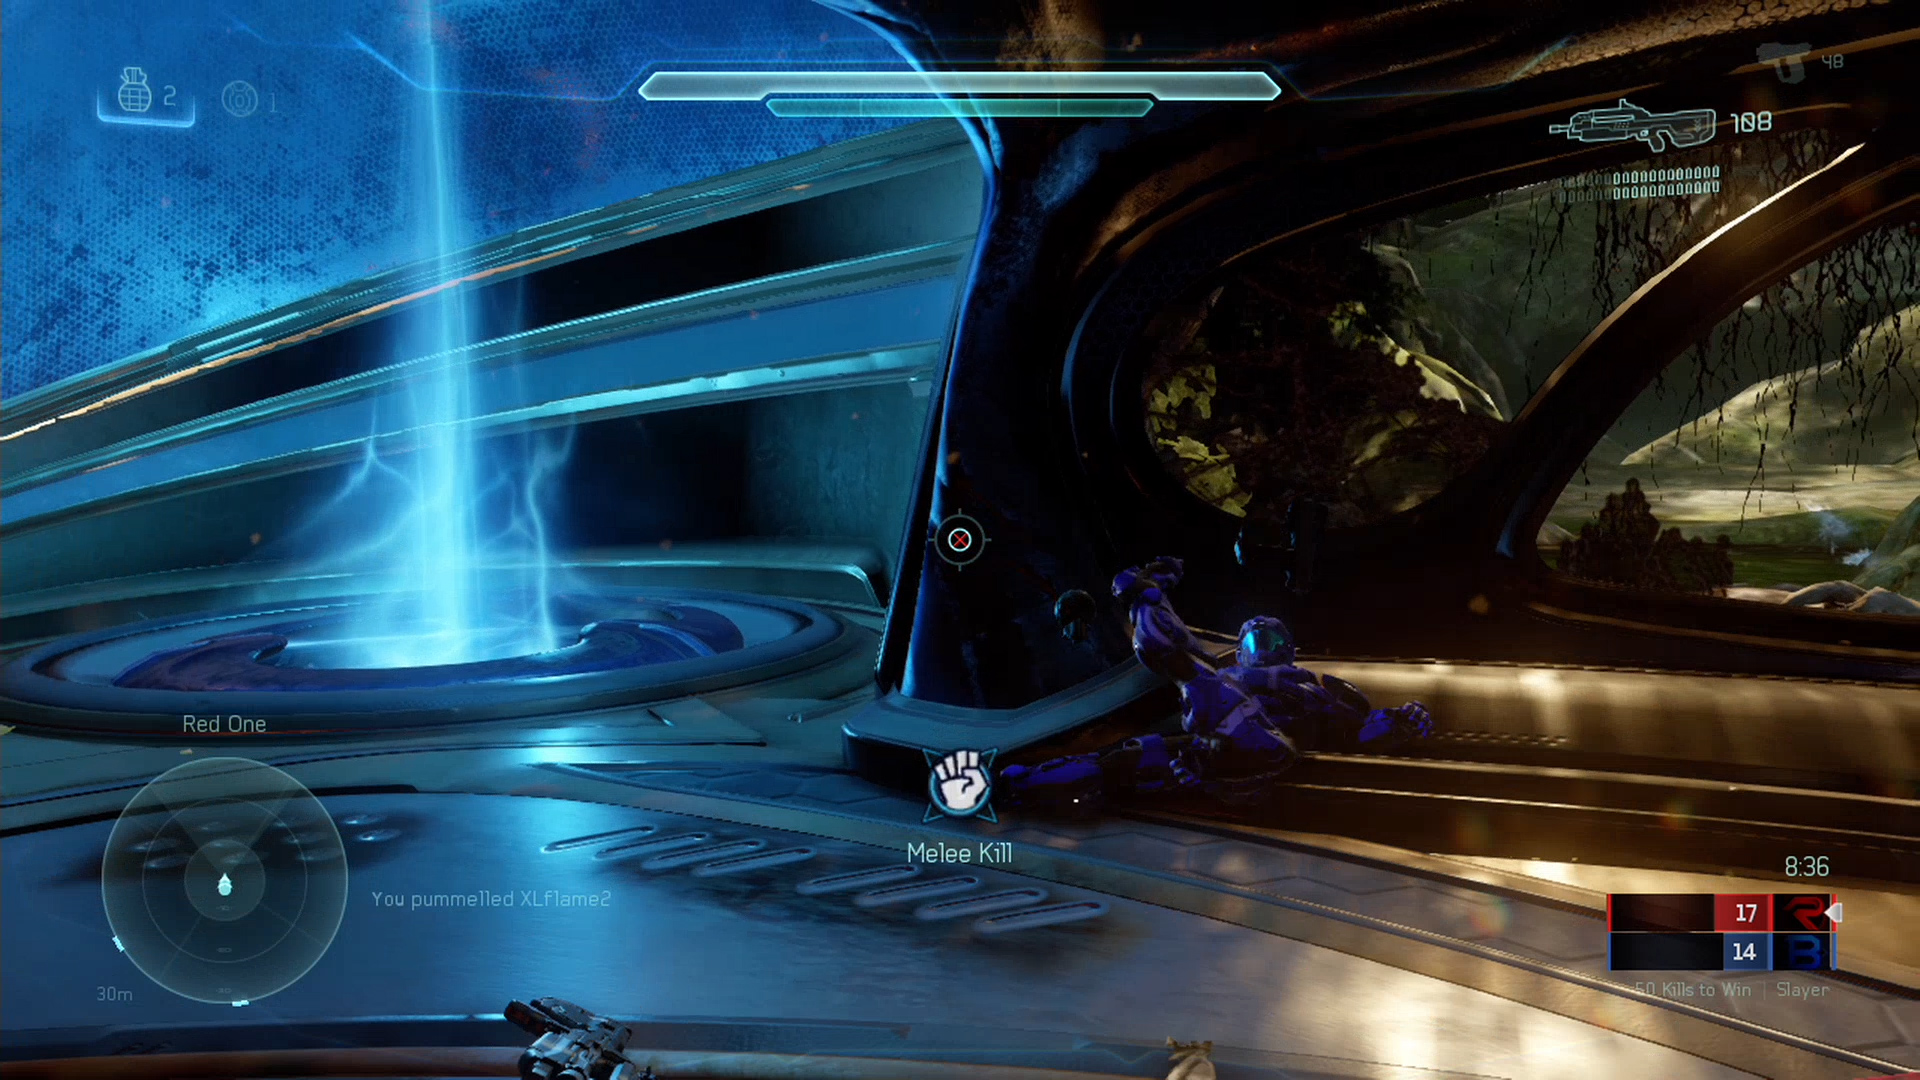 Halo 5 Guardians Frame Rate & Graphics Engine Analysis | Tech